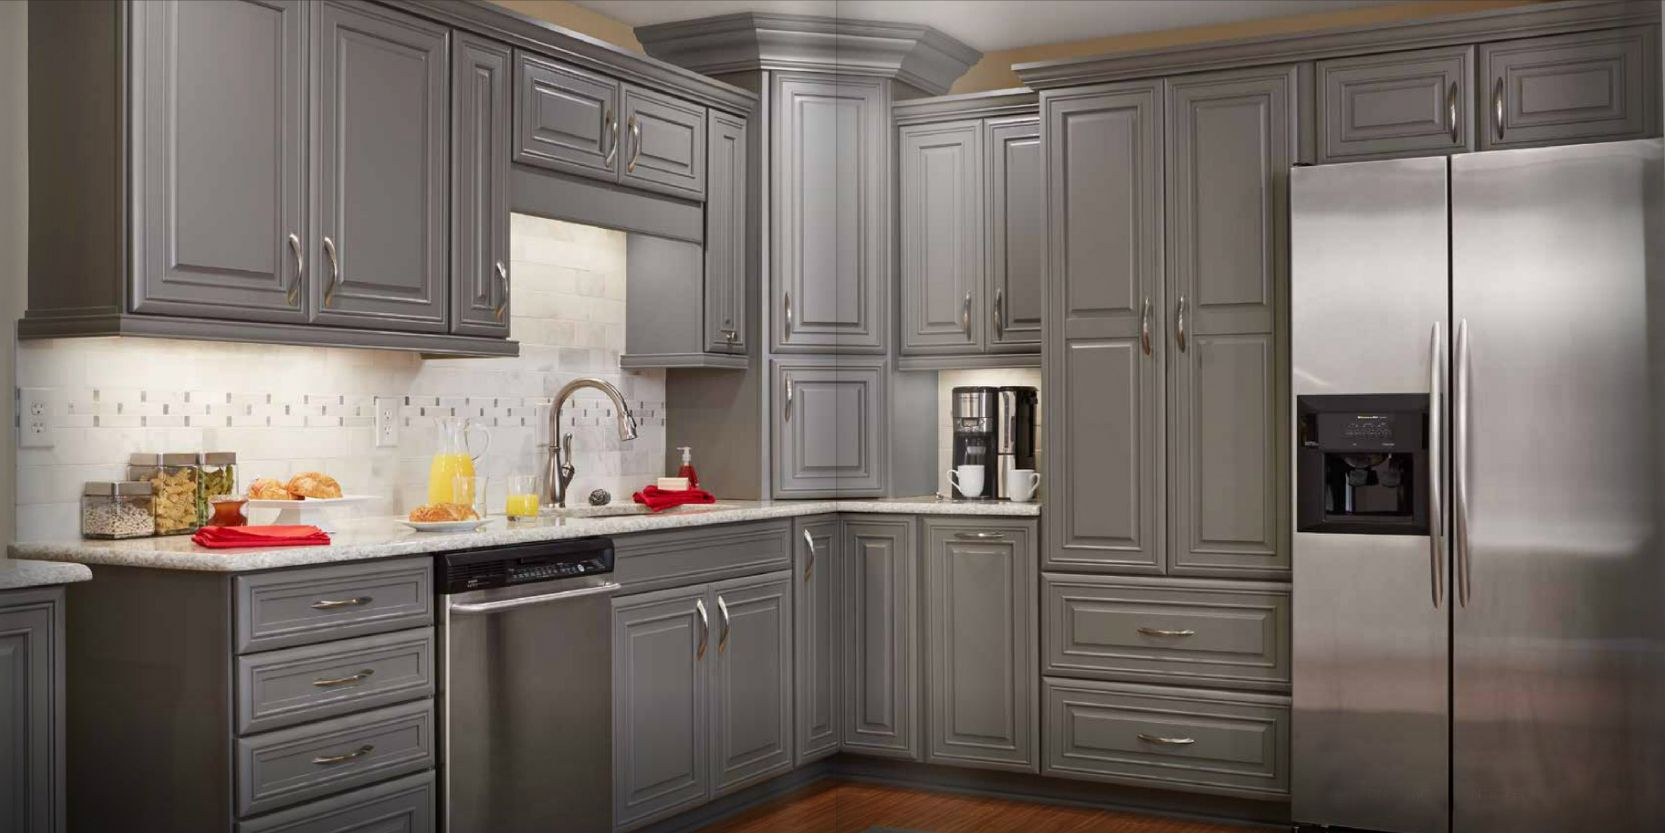 Grey Stained Kitchen Cabinets Google Search Logan Blvd Pinterest Kitchens Grey Kitchen